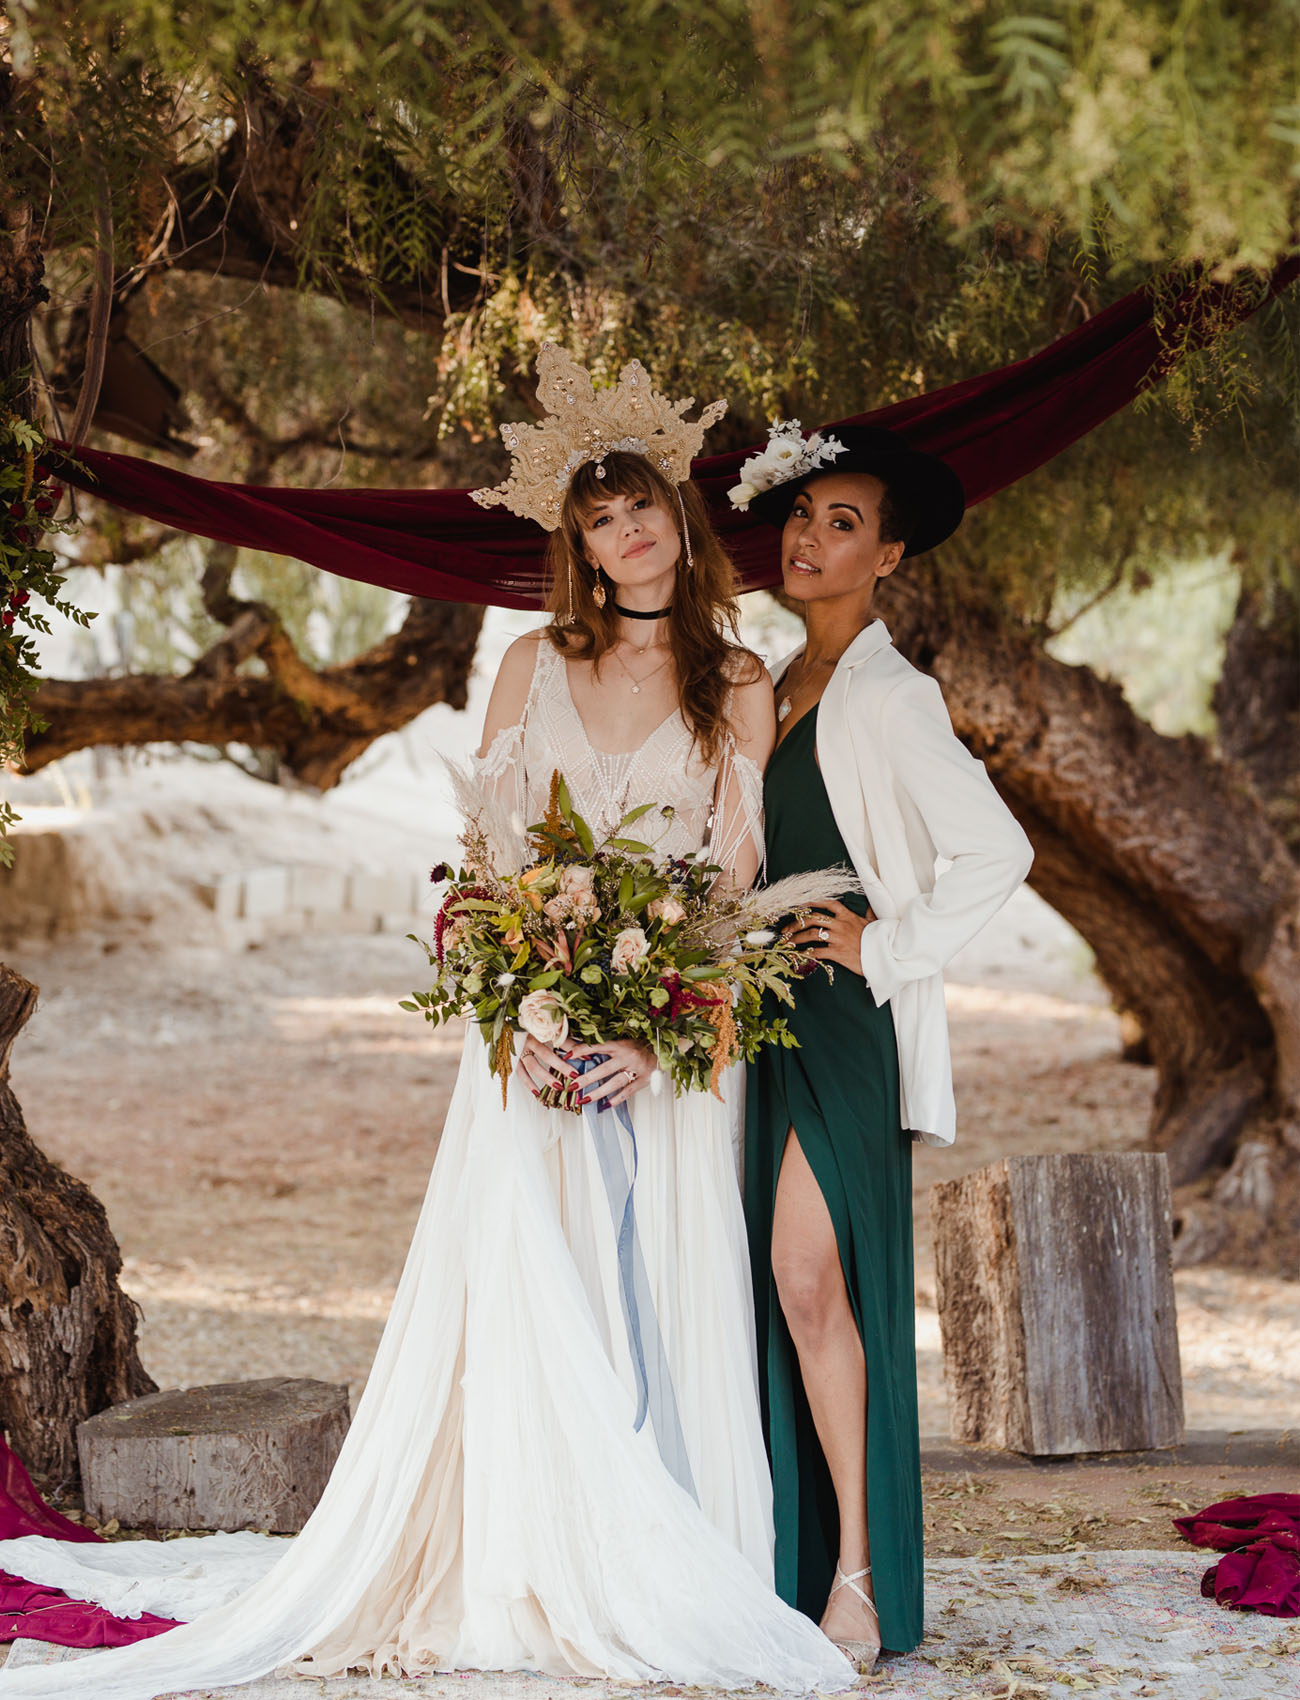 Gold Dust Women Witchy Stevie Nicks Inspired Wedding In The